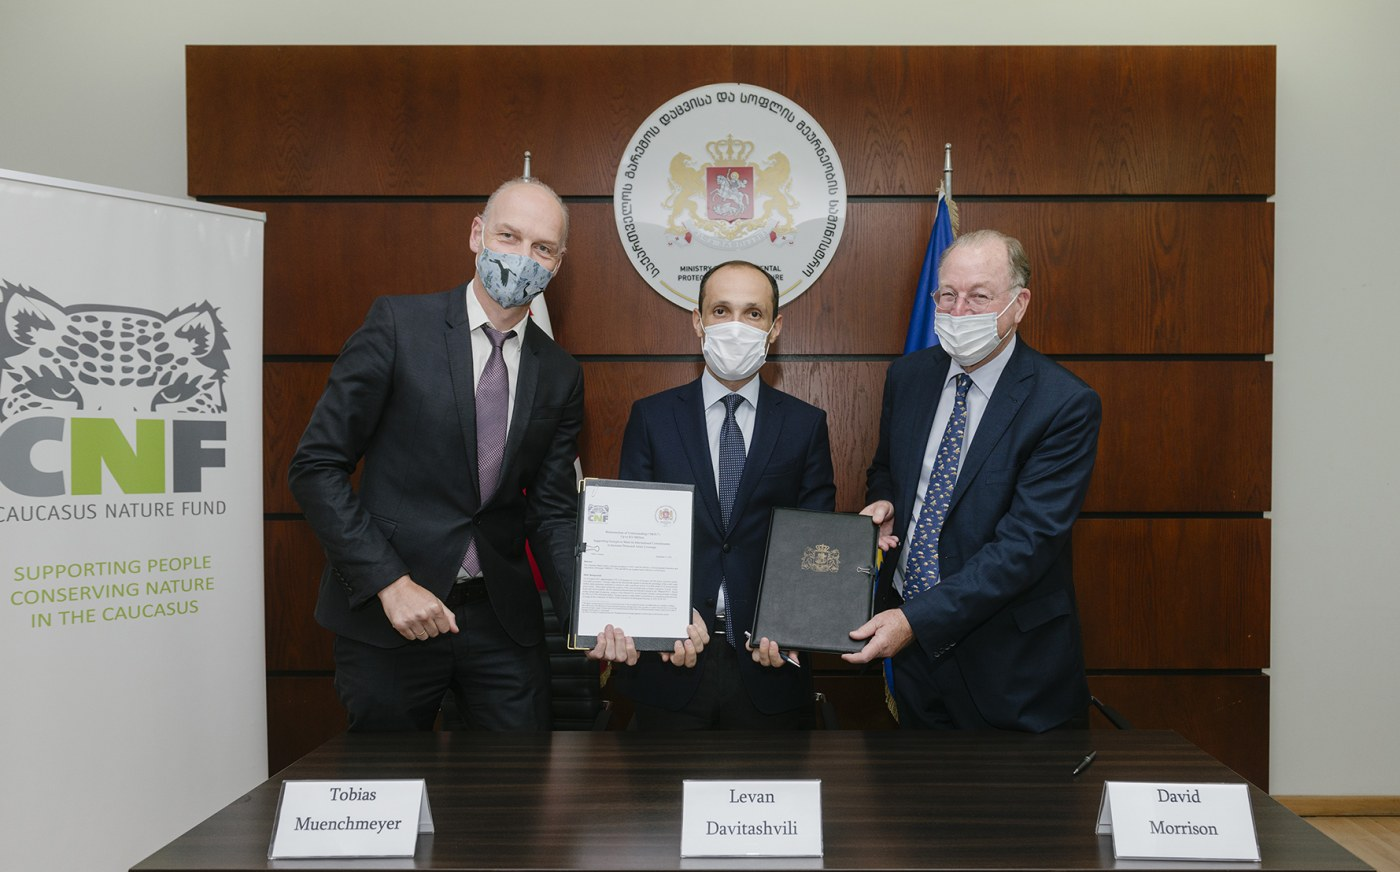 Signing Ceremony with Vice Premier of Georgia Levan Davitashvili (mid), CNF's Supervisory Board Chair David Morrison (right), Executive DIrector of CNF Tobias Muenchmeyer (left)